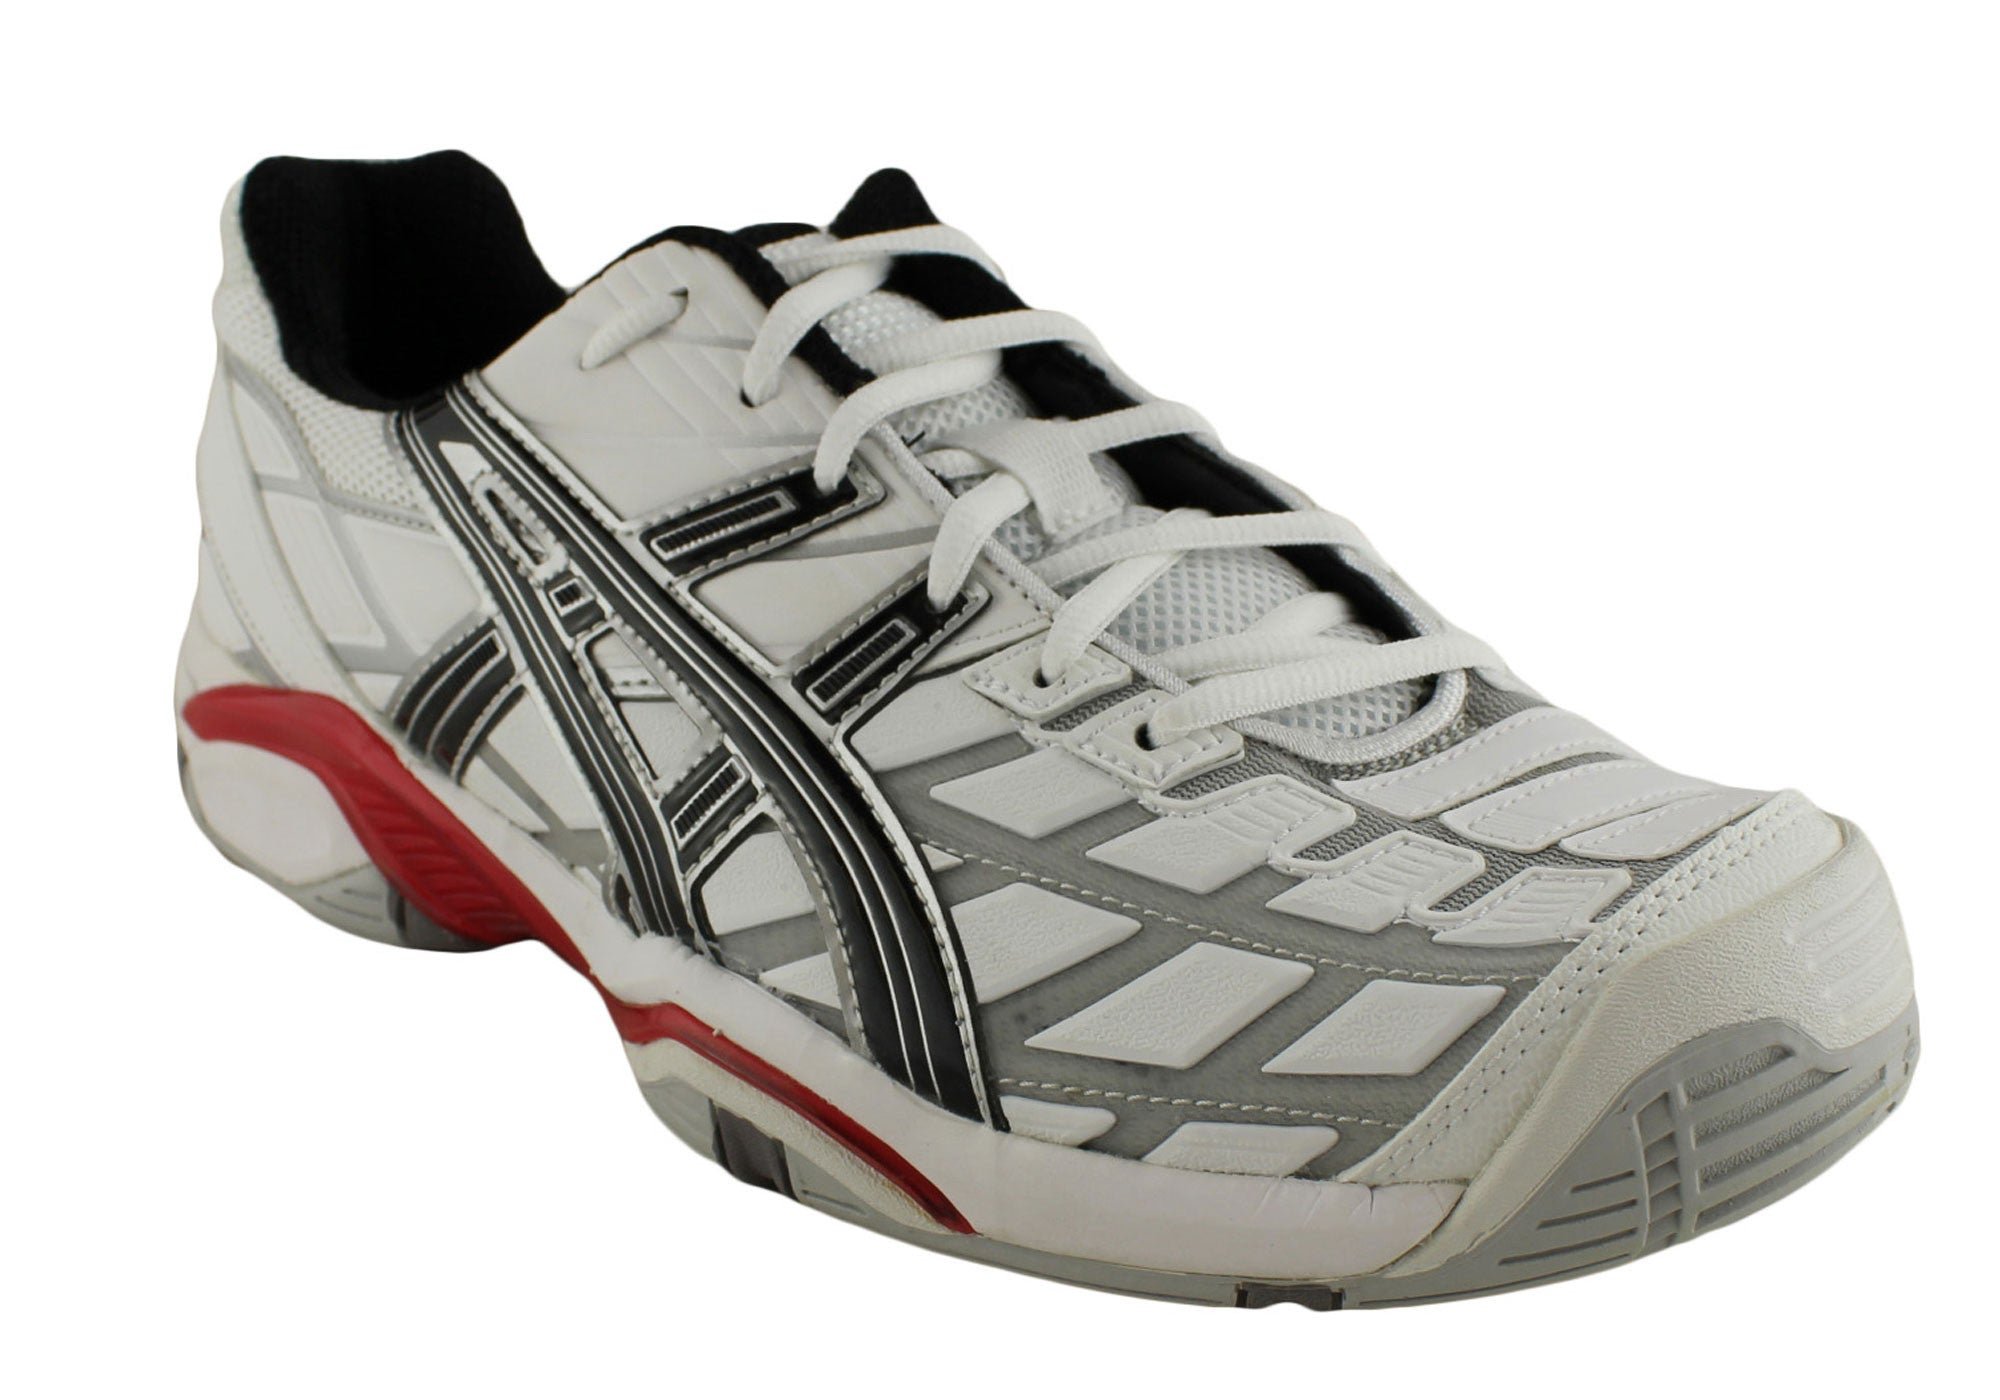 Asics Gel Challenger 8 Mens Sports/Training Shoes